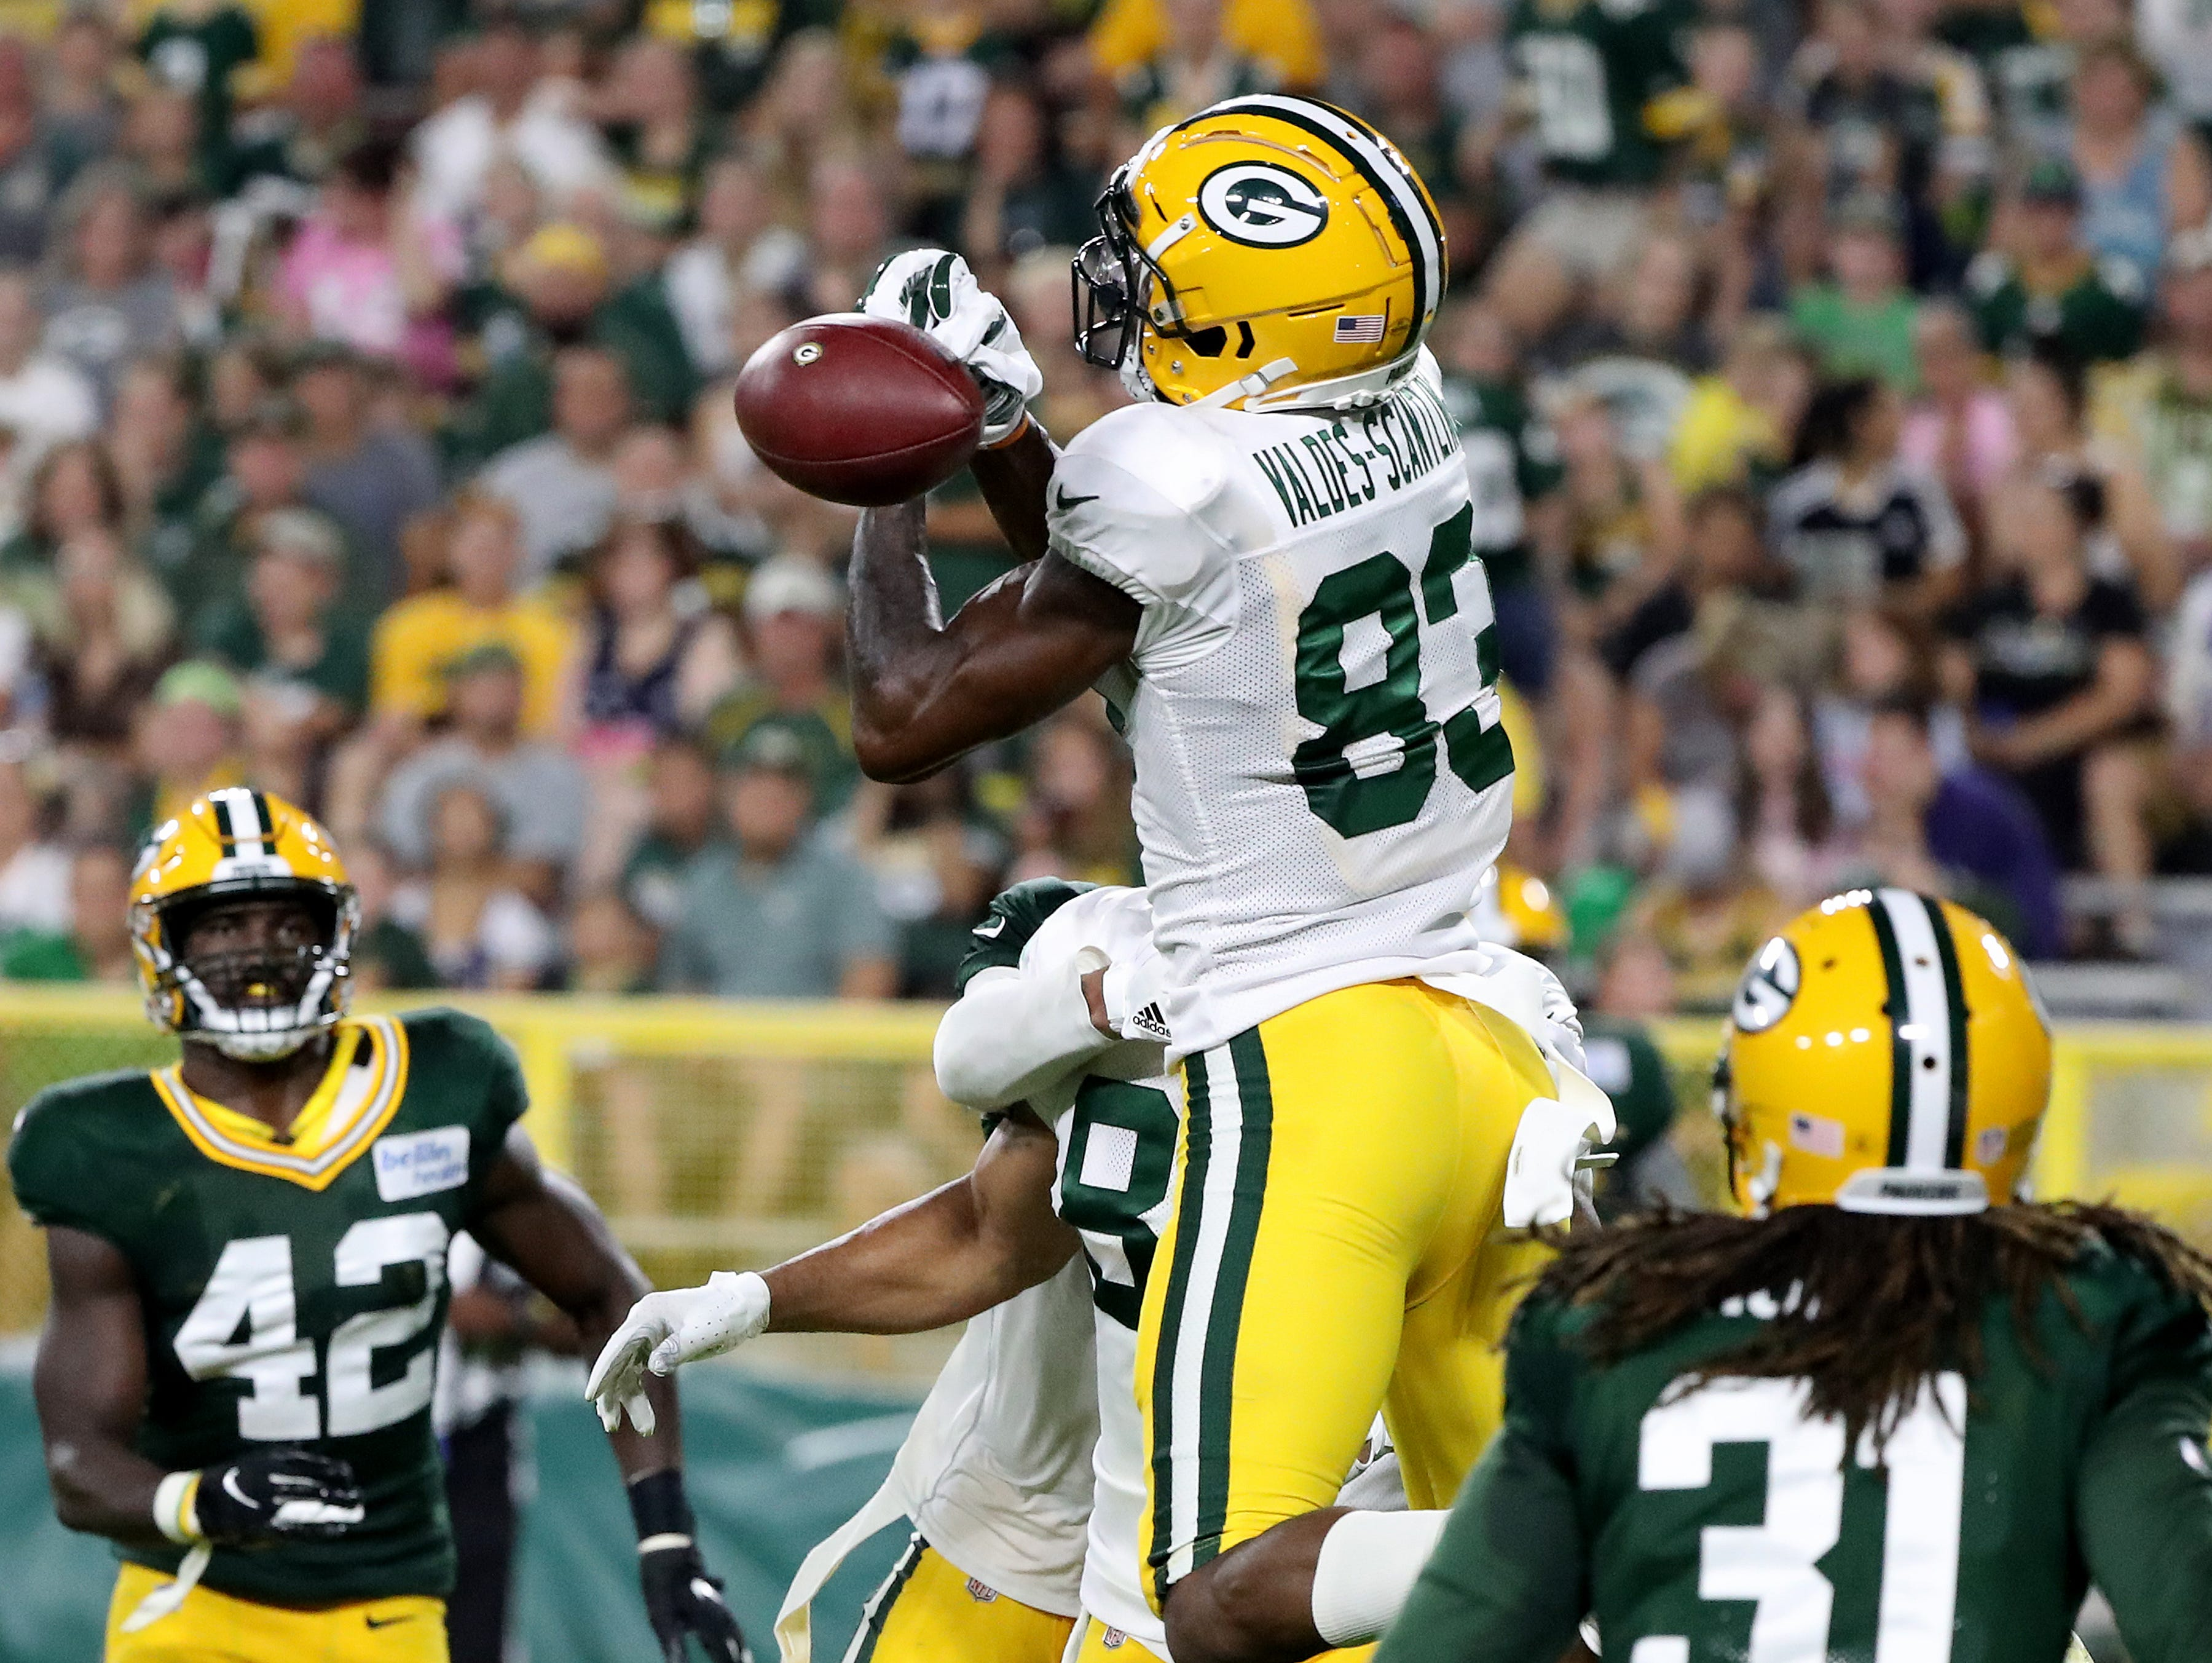 Green Bay Packers wide receiver Marquez Valdes-Scantling (83) drops a fourth down pass in the end zone during Green Bay Packers Family Night  Saturday, August 4, 2018 at Lambeau Field in Green Bay, Wis.,